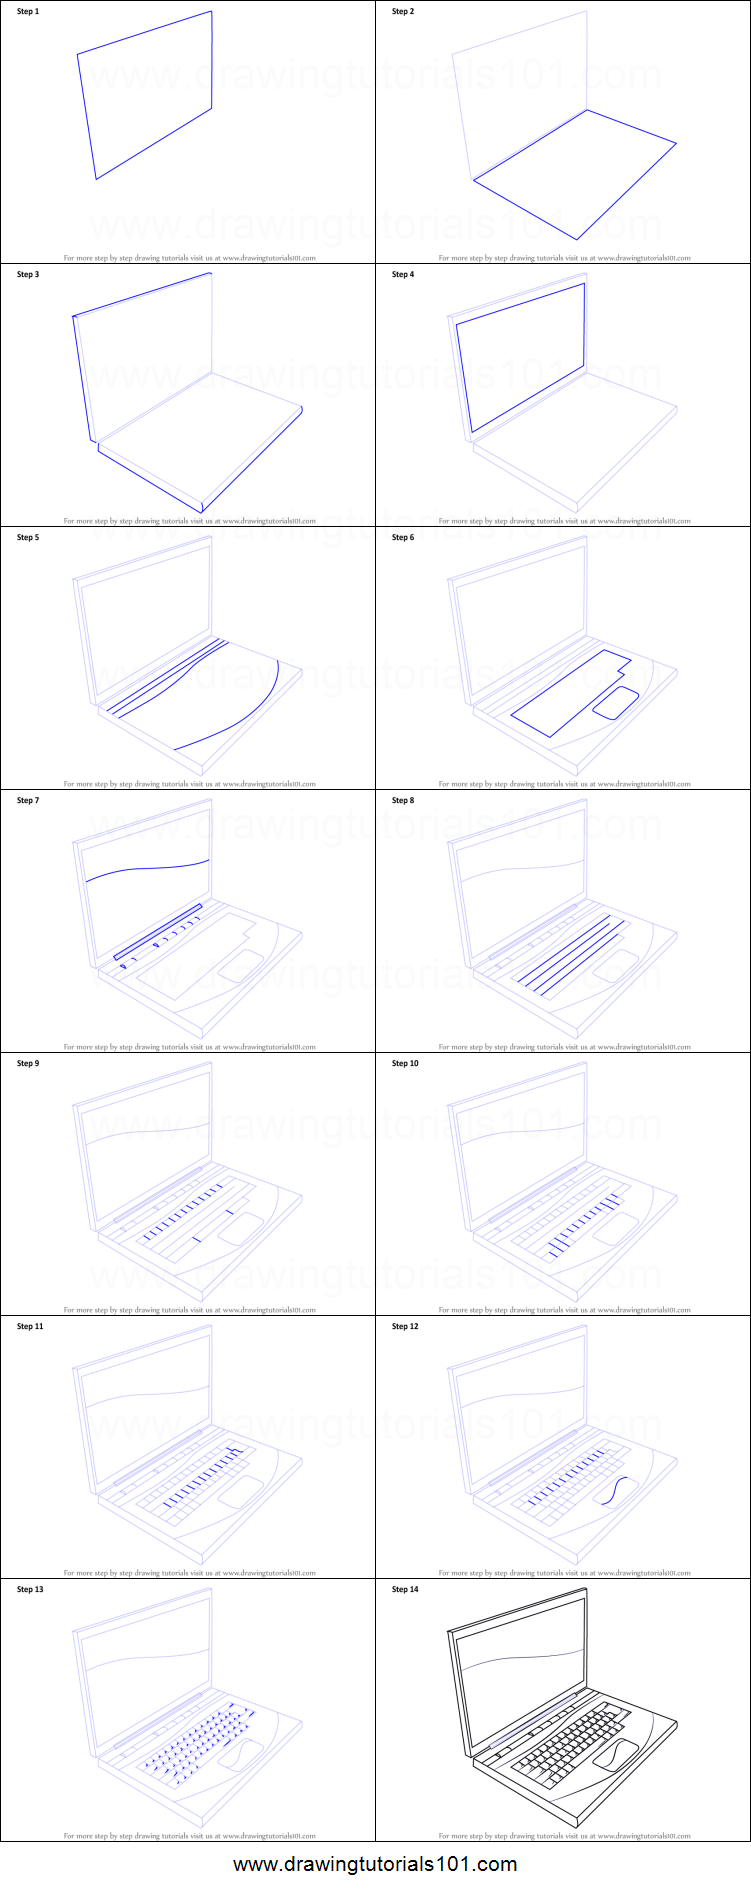 Laptop Is An Easy To Hold And Portable Computer System And Is Very Popular Among Businessmen Drawing Sheet Computer Drawing Drawing Tutorial